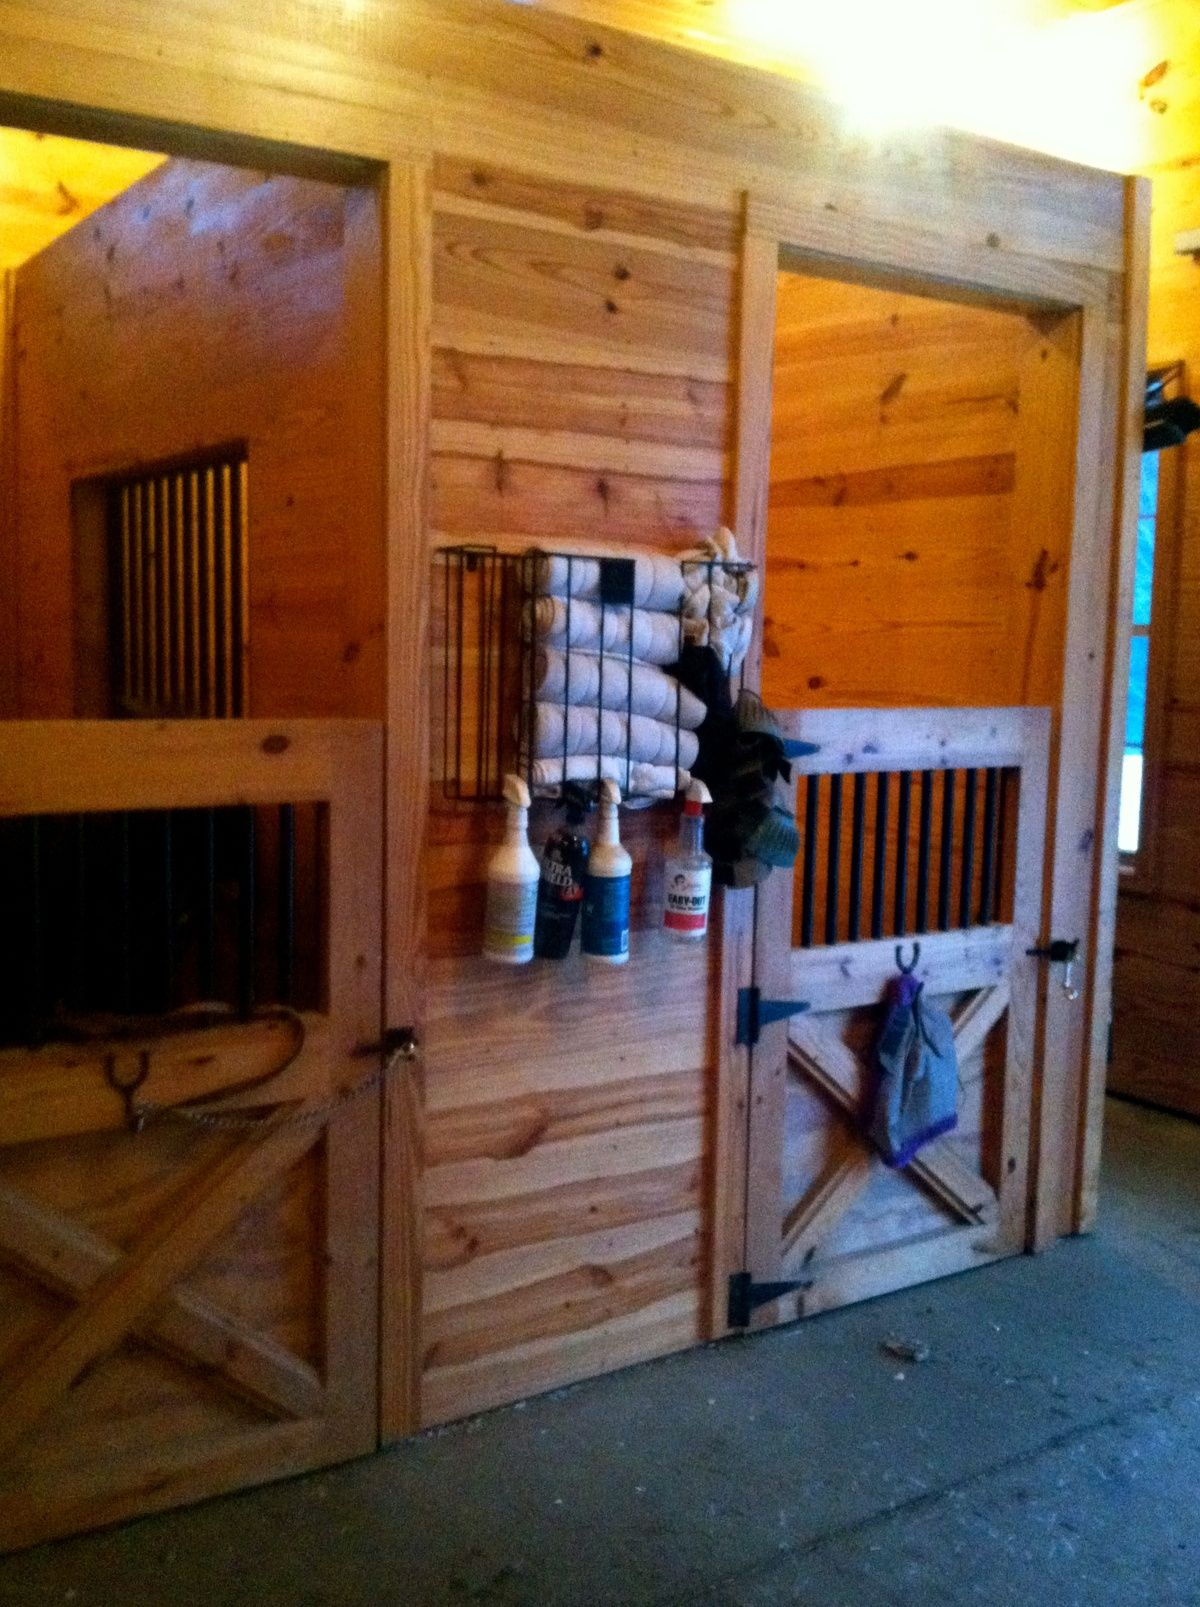 Pin By Troy West On Stuff To Buy Horse Barns Goat Barn